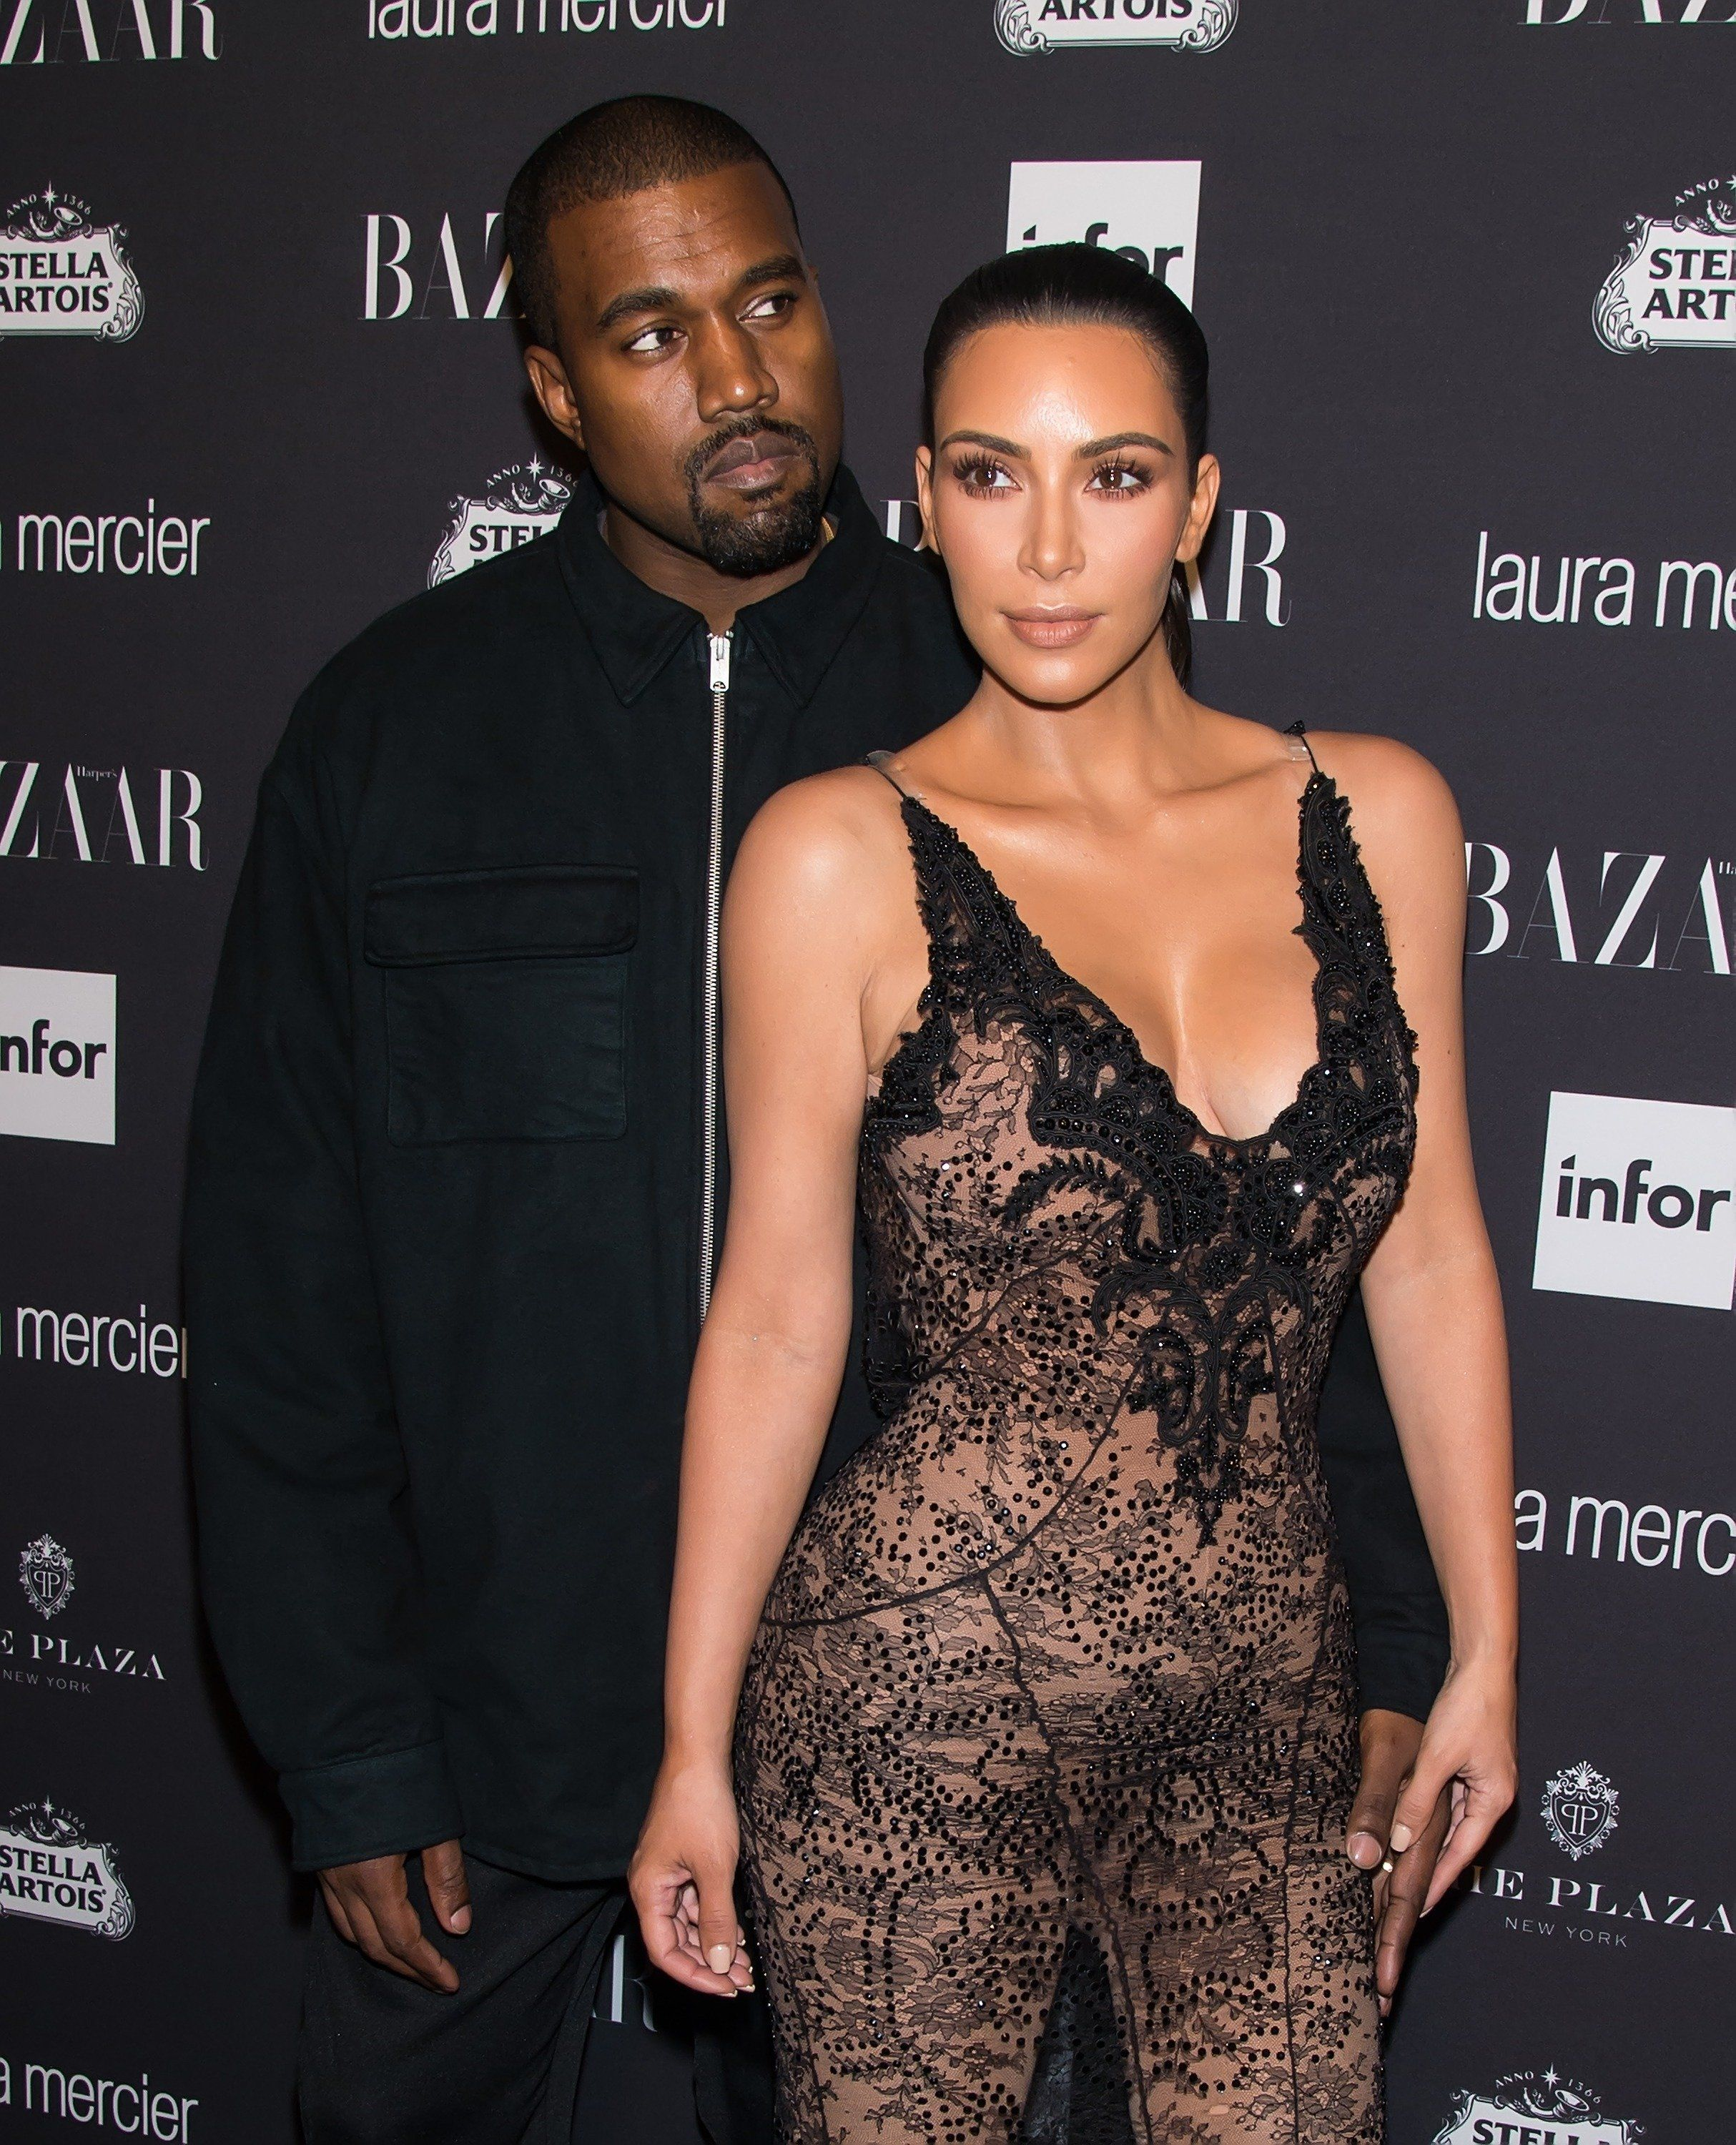 Kim Kardashian 'Screamed And Cried' After Kanye West's Comments About